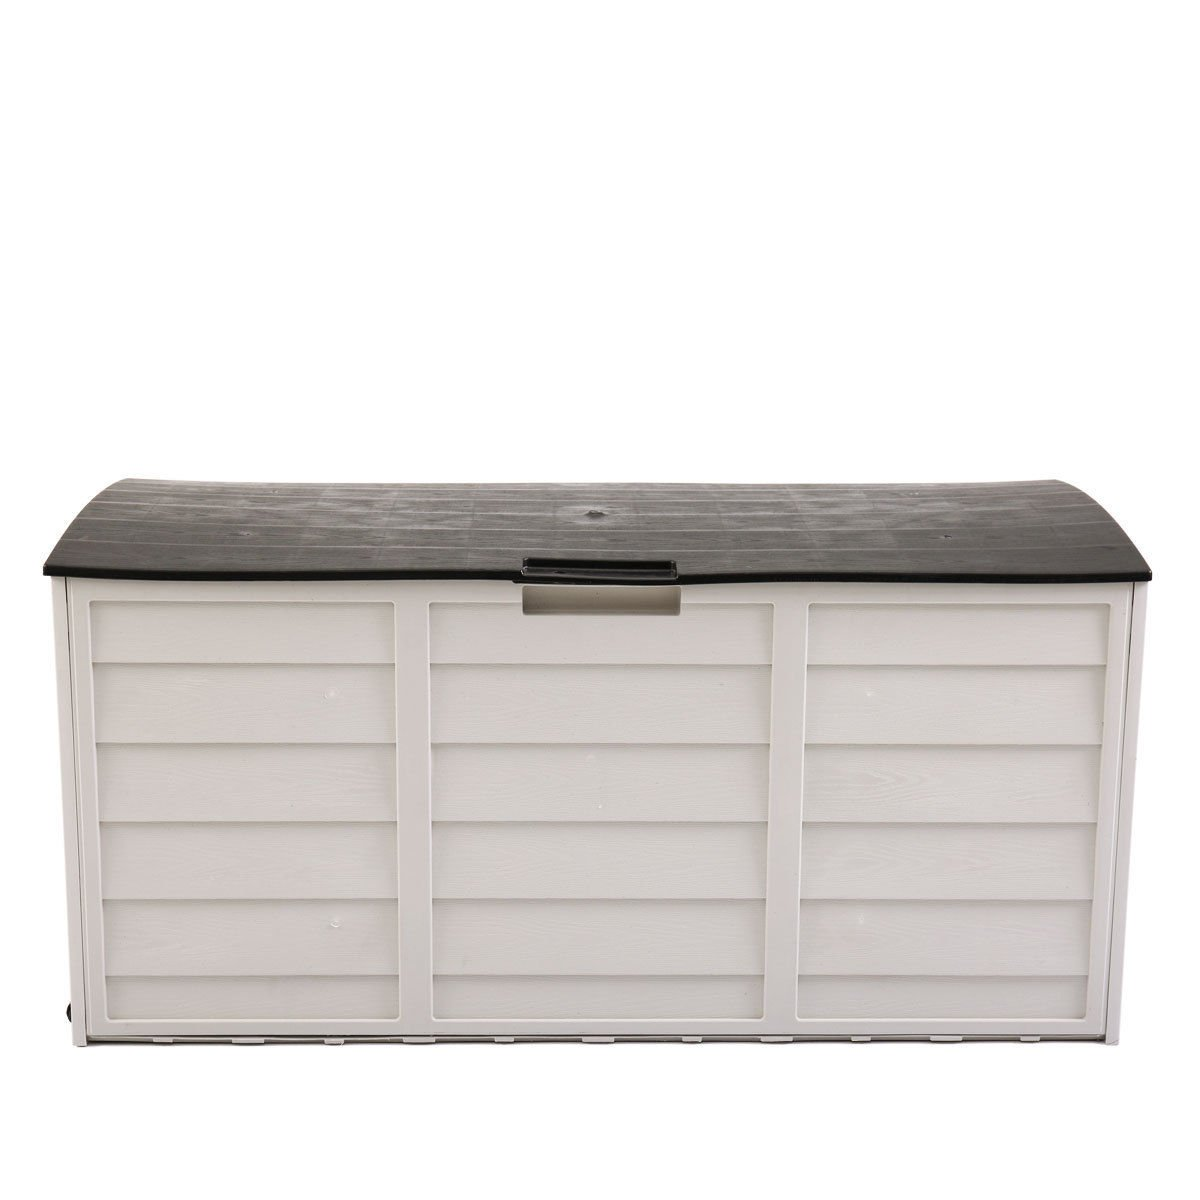 JAXPETY 79 Gallon Outdoor Garden Storage Shed Patio Garage Tool Box Backyard Deck Cabinet